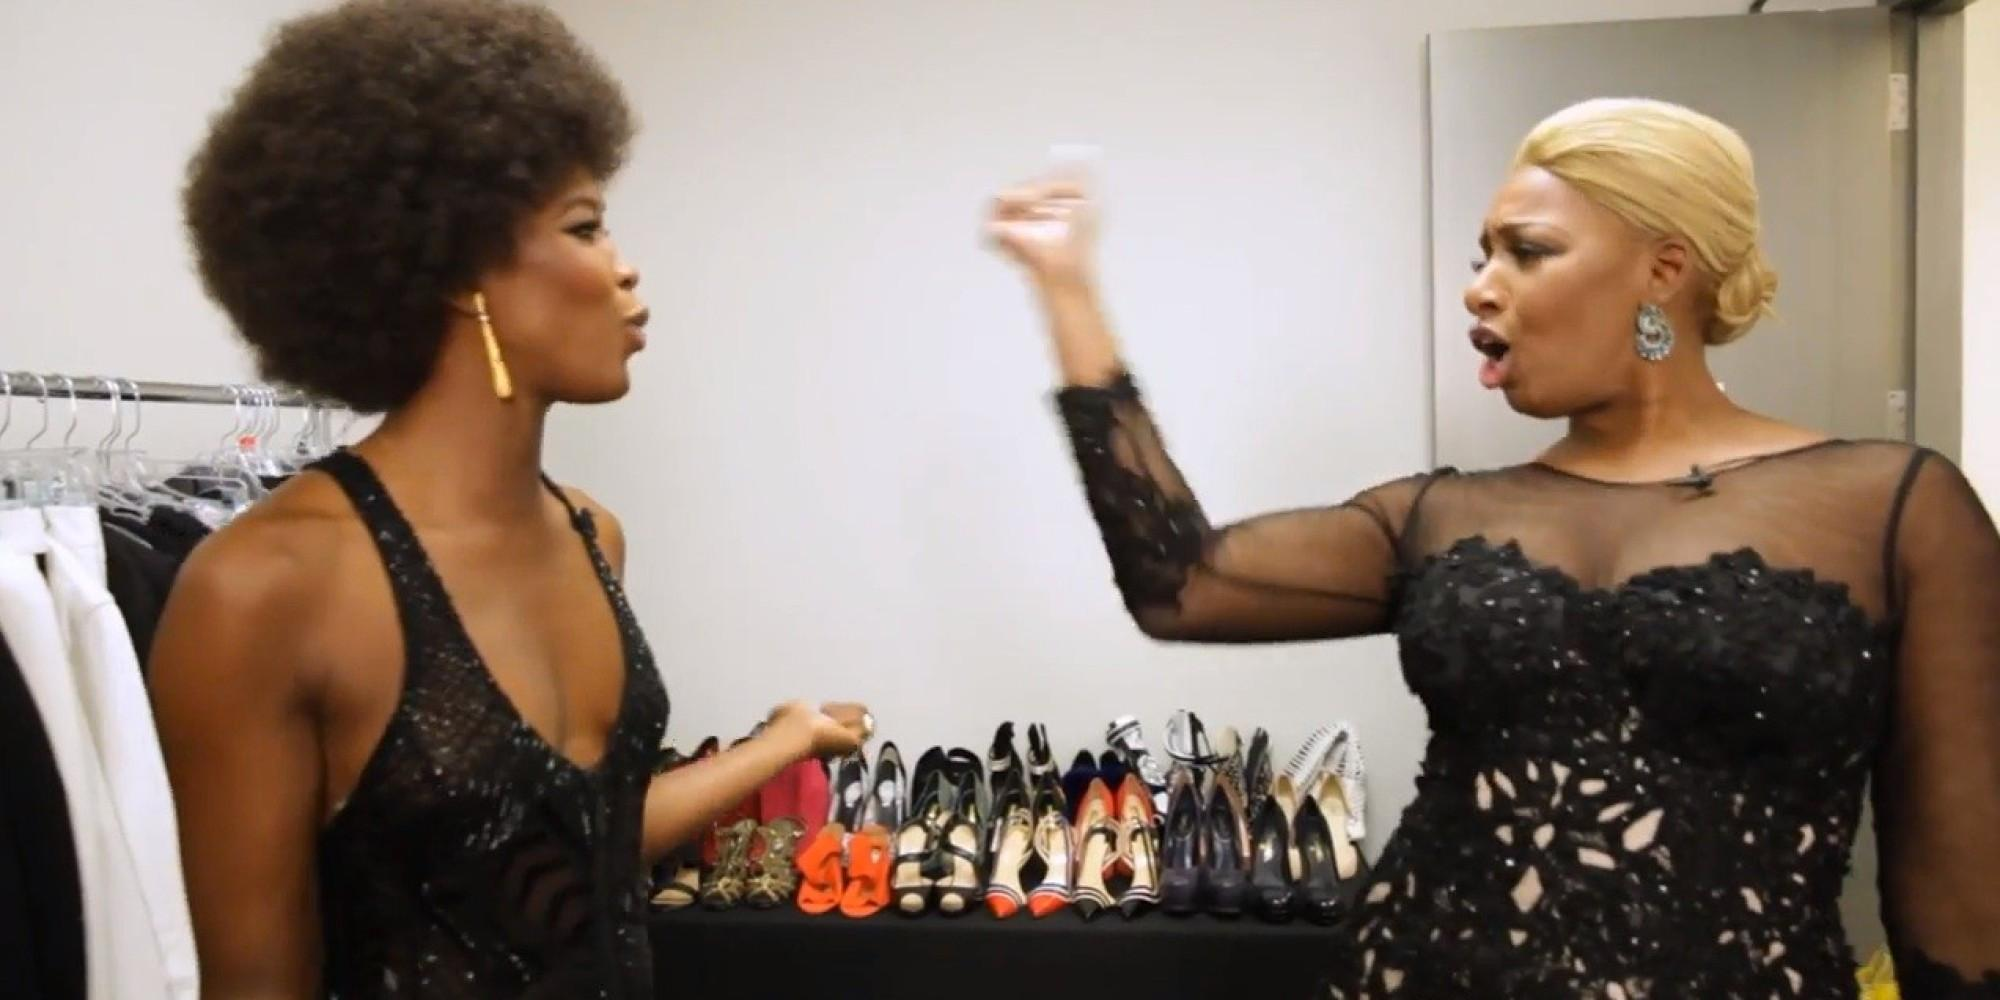 NeNe Leakes Does Some Catwalk Moves Together With Naomi Campbell - See The Video